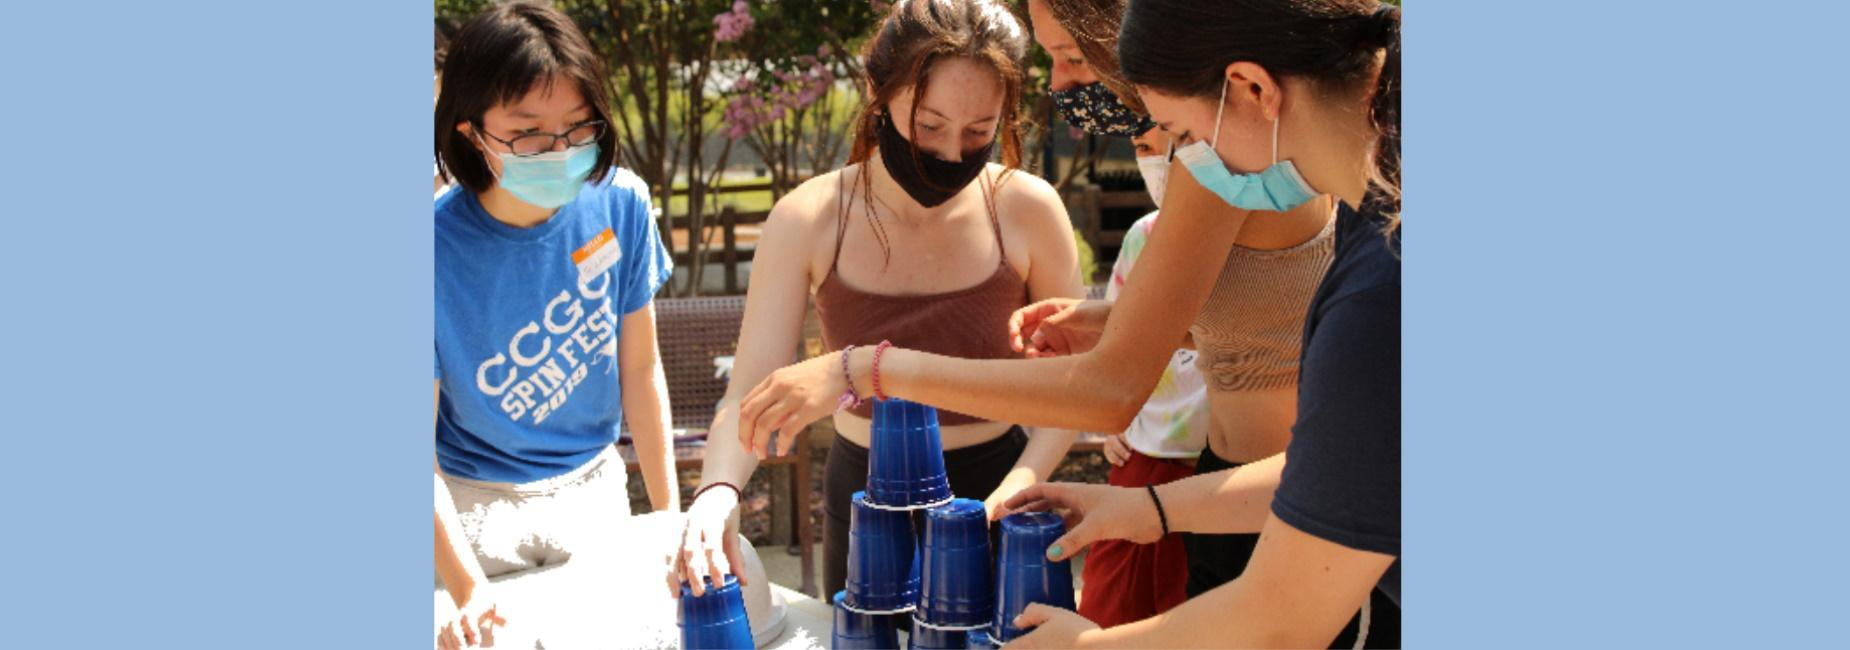 Student completing an activity with cups.